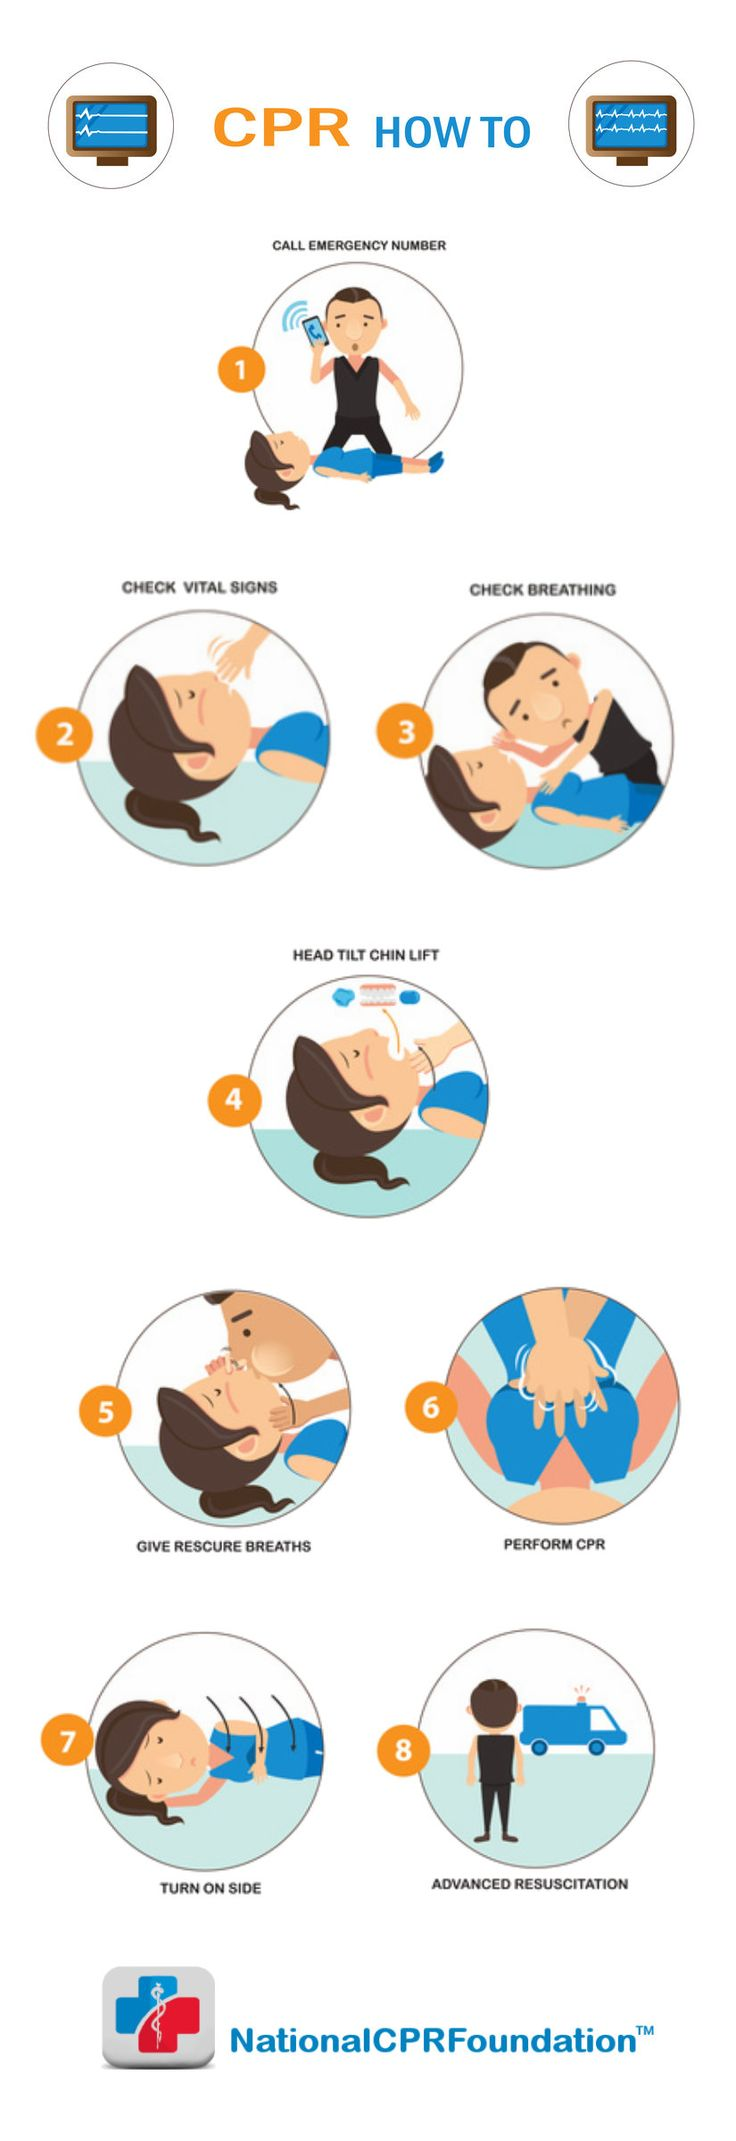 Learn the steps for proper CPR training